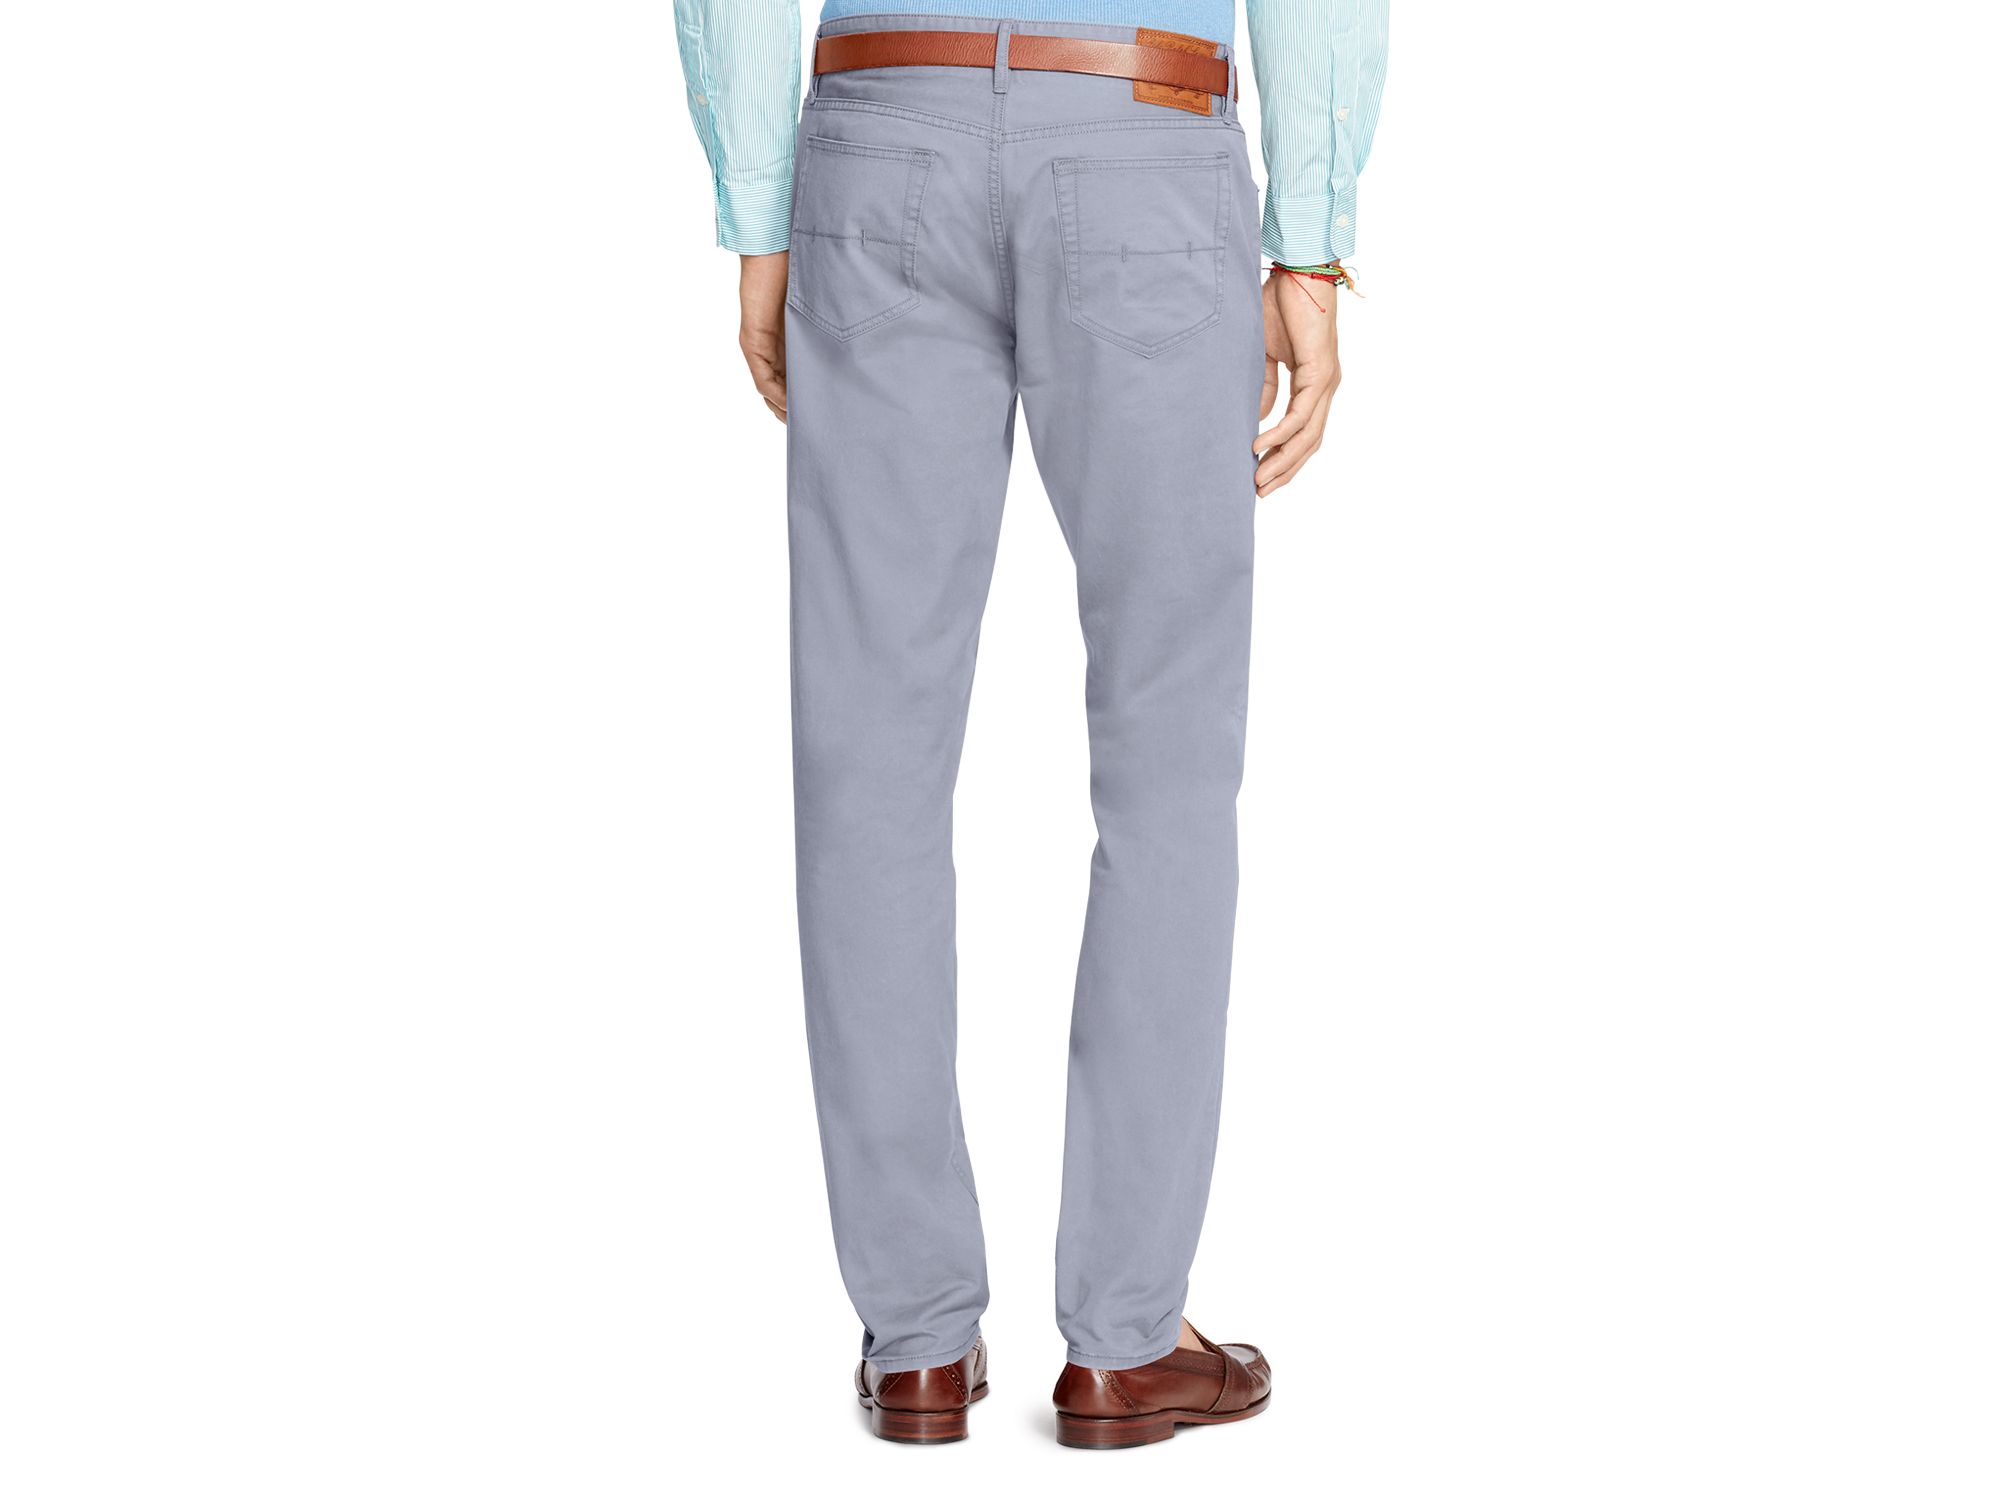 Lyst - Ralph Lauren Polo Classic-fit Stretch Chino Pants in Blue for Men a04041bf198